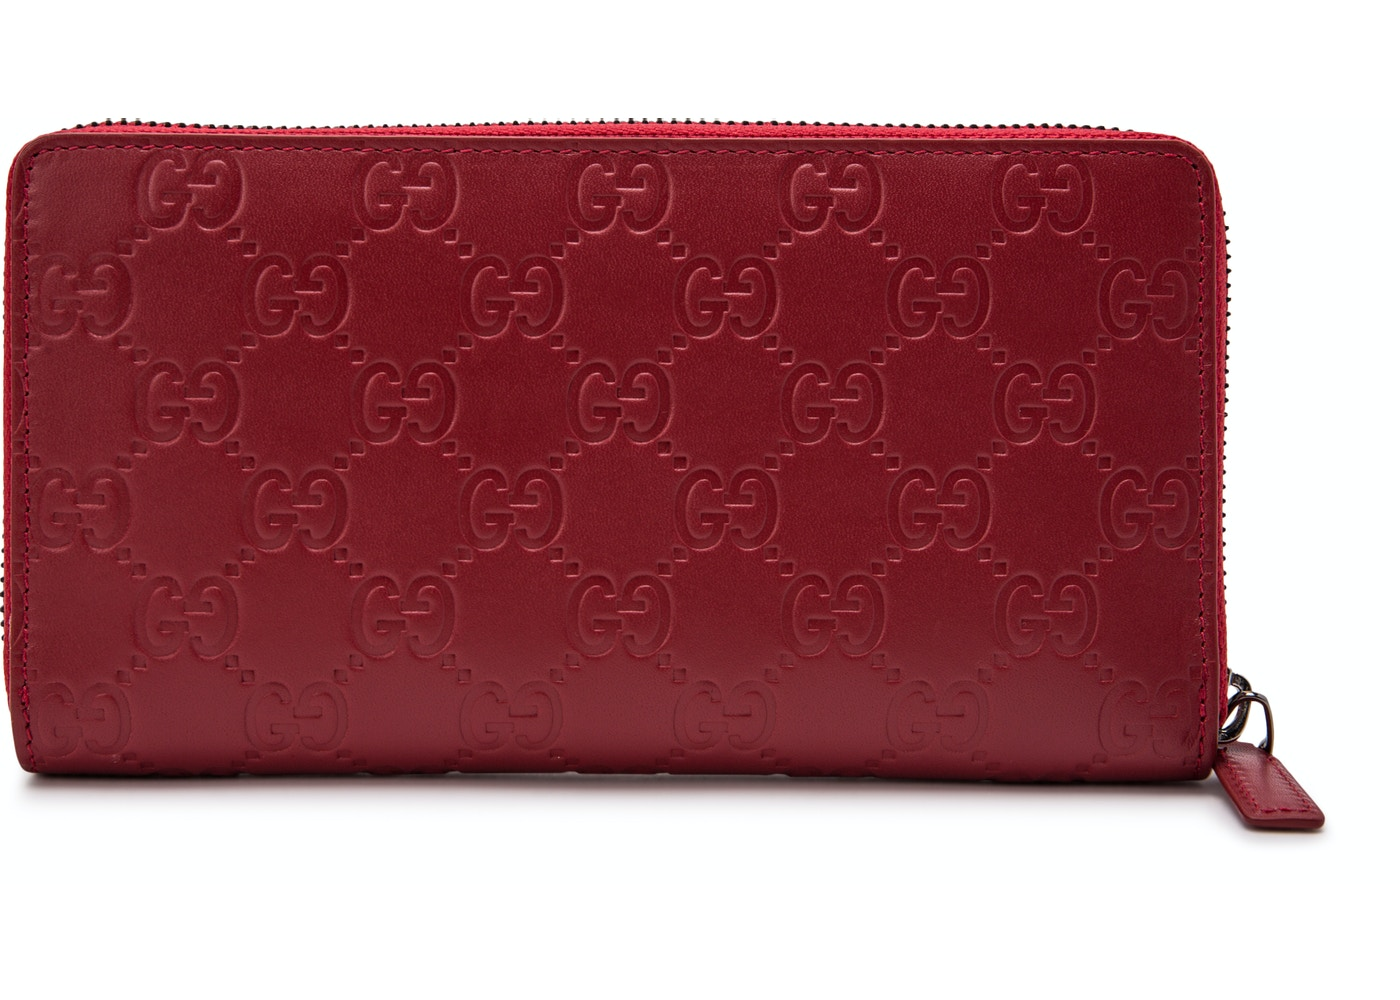 3c96c0f8c66 Gucci Zip Around Wallet Signature Red